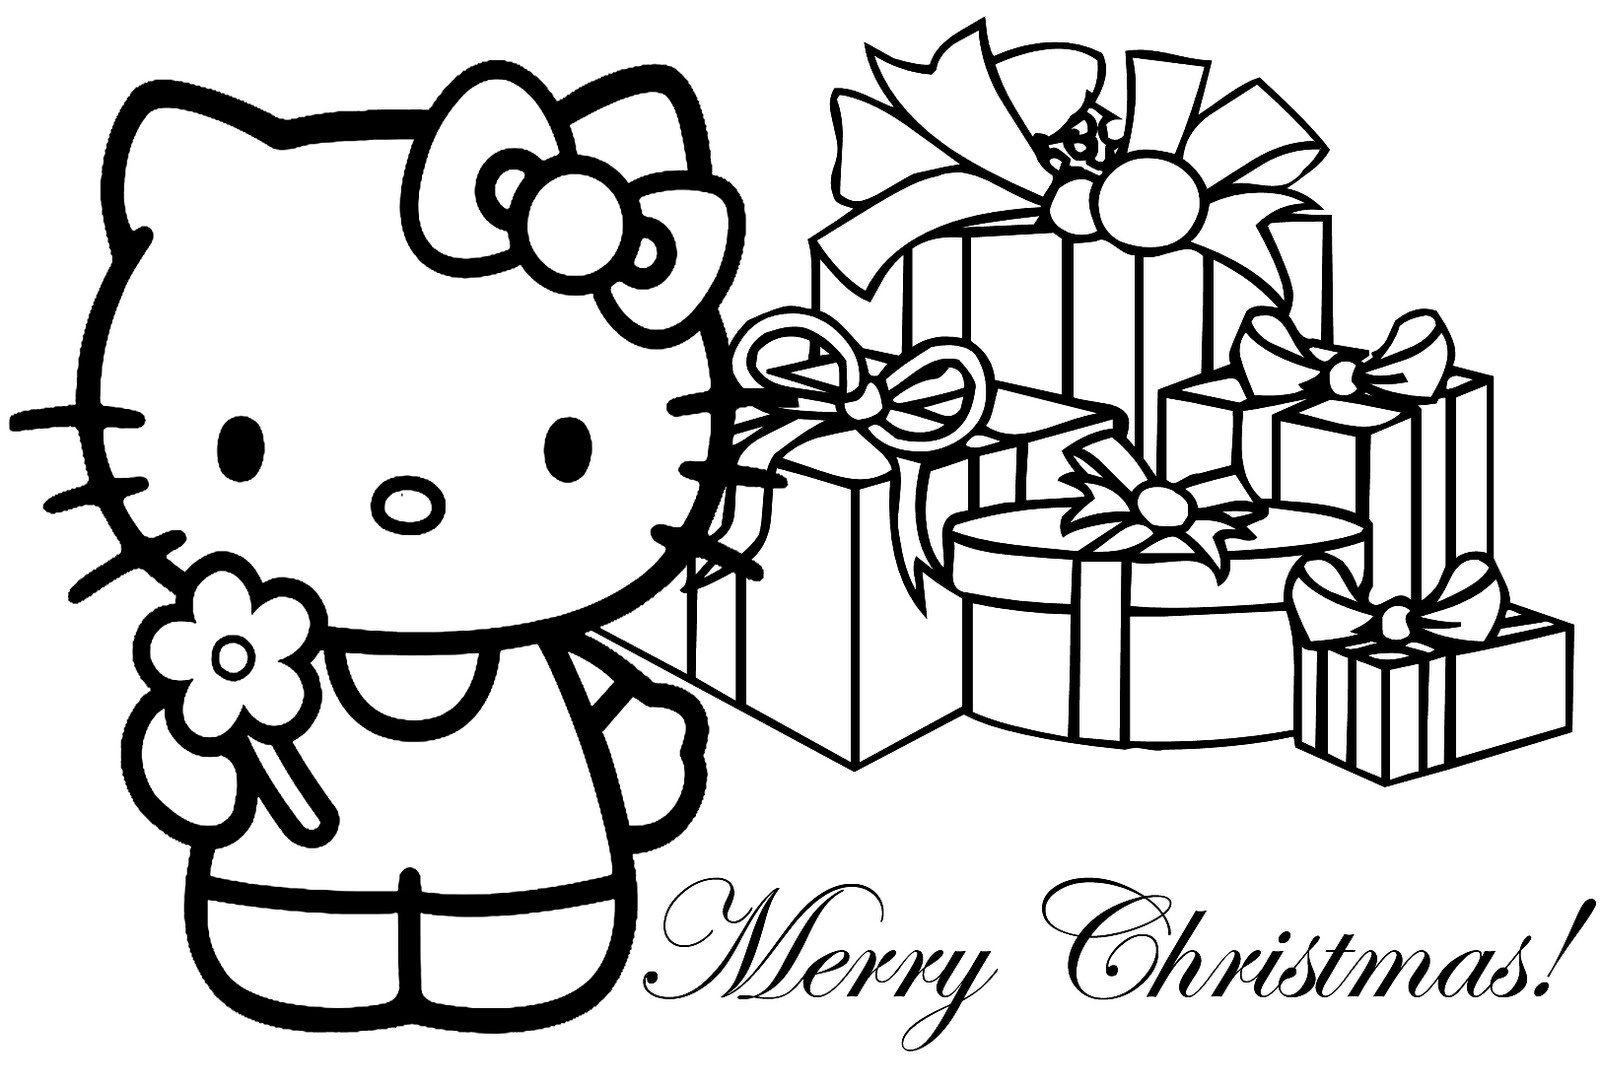 Free Printable Merry Christmas Coloring Pages - Christmas Pictures To Color Free Printable